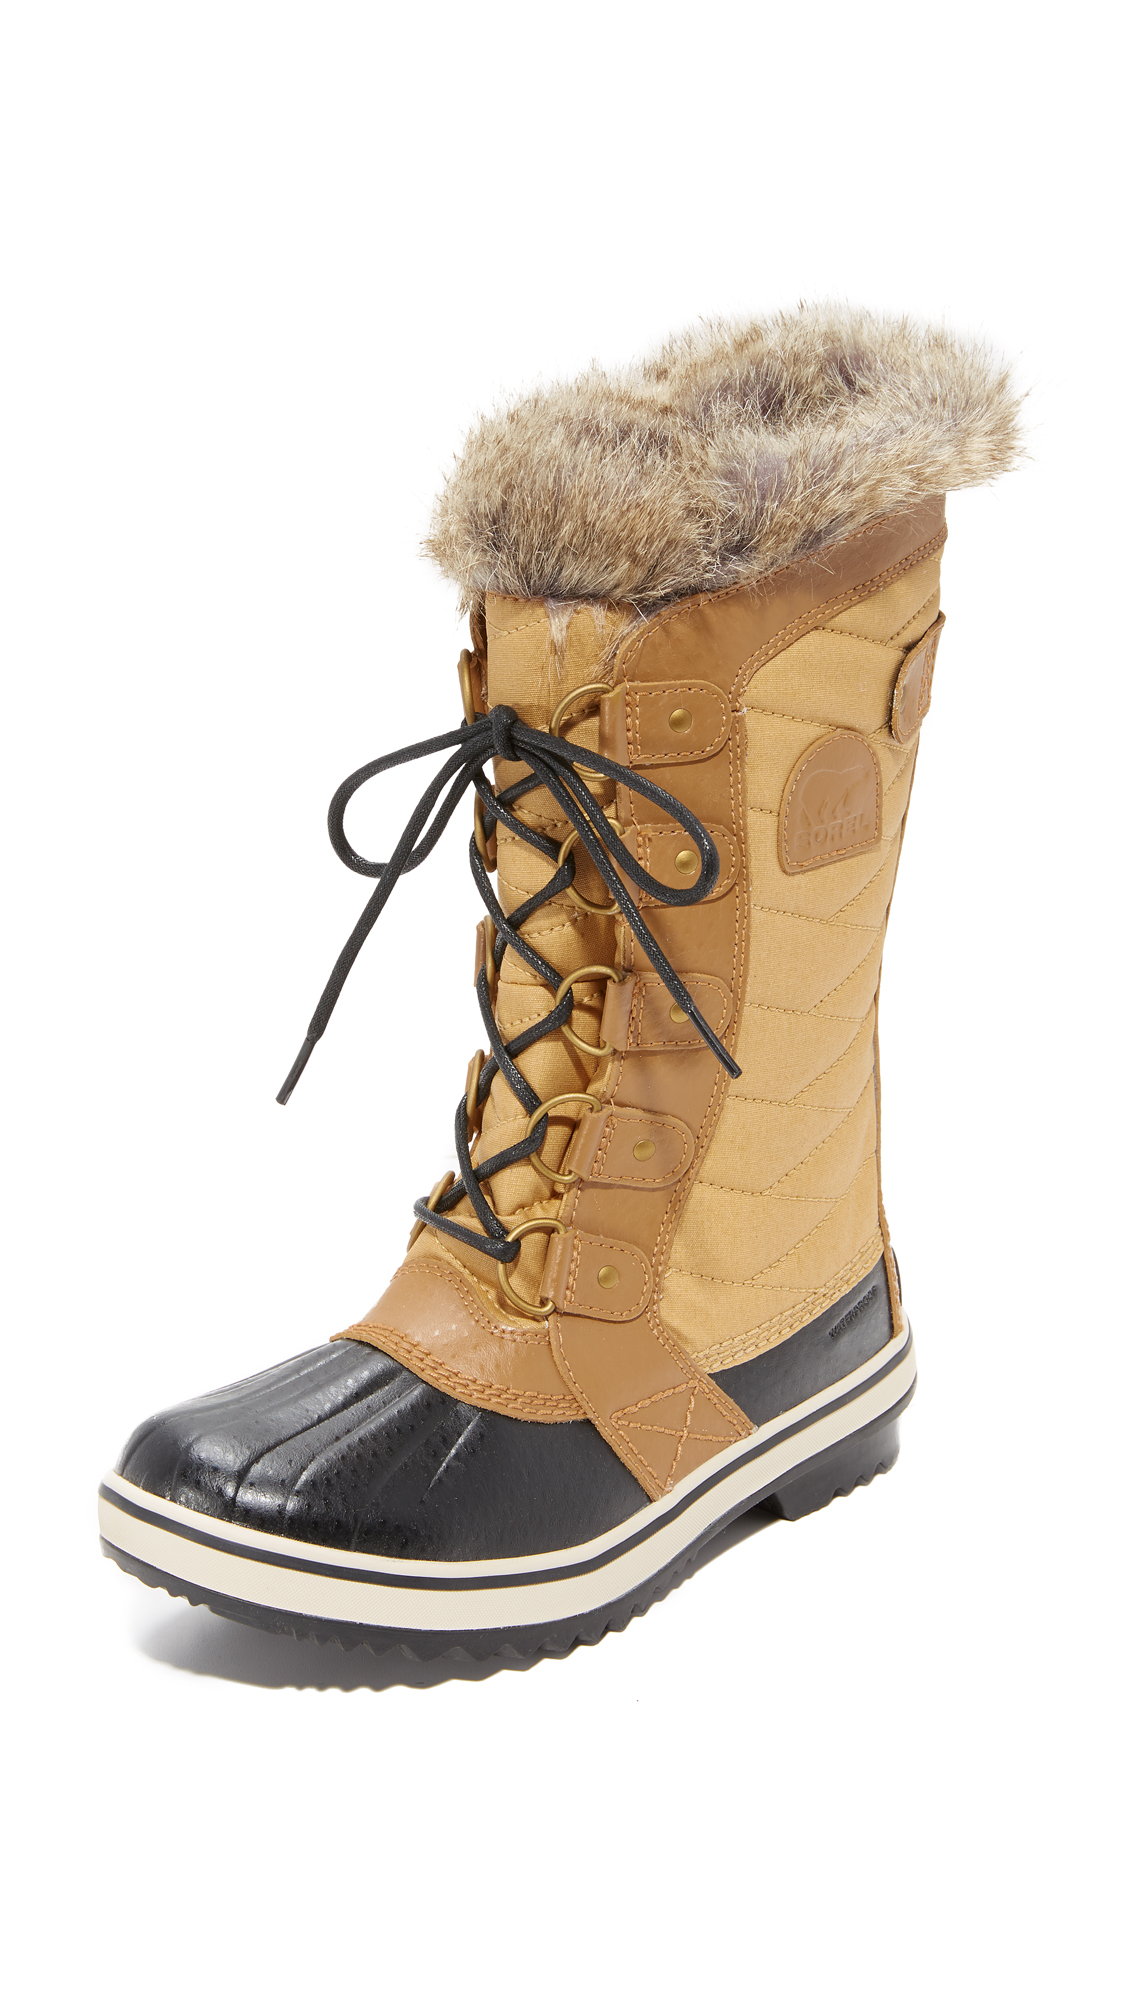 Sorel Tofino II Boots – 50% Off Sale